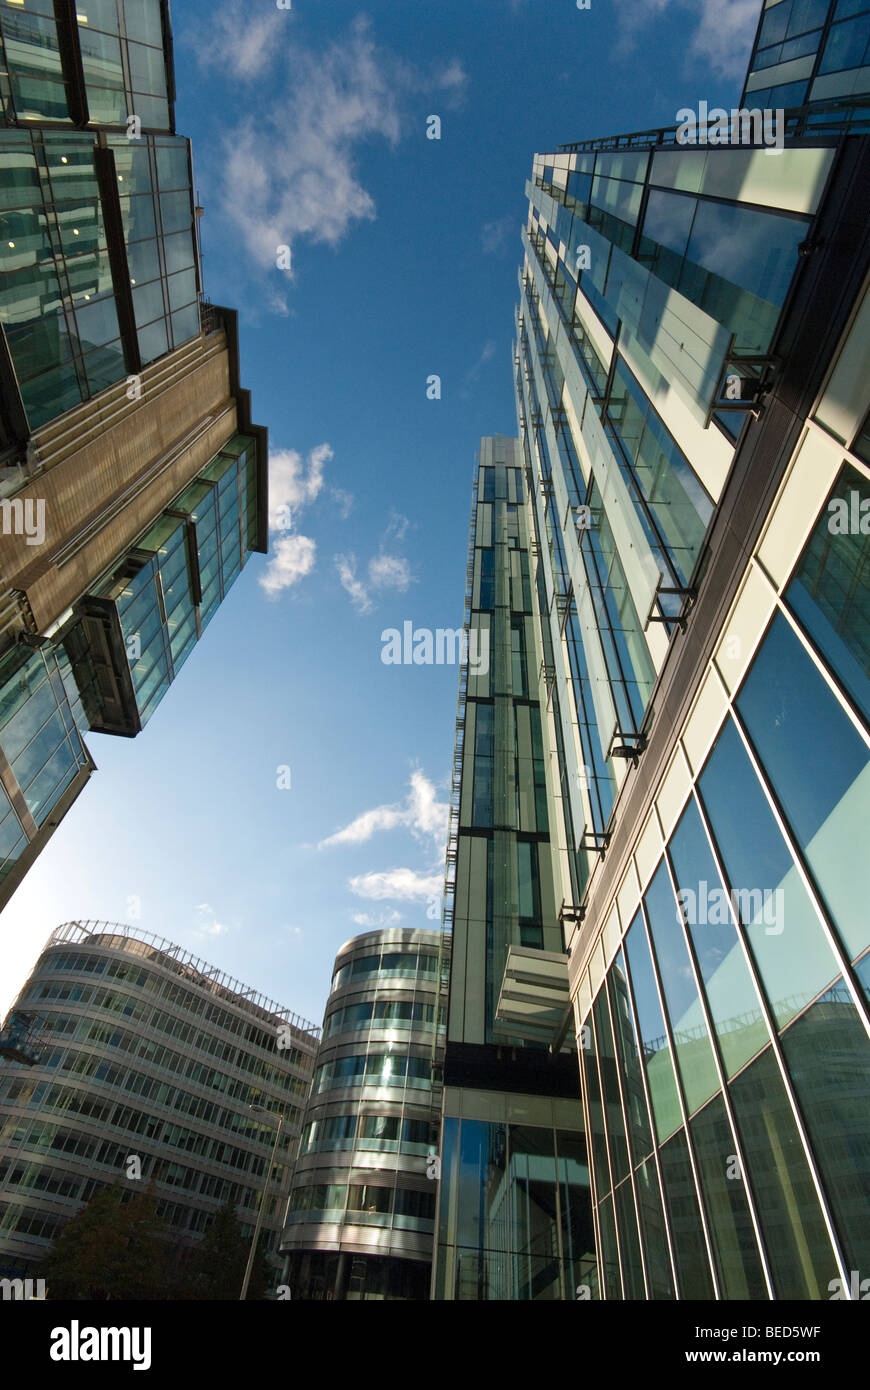 Manchester, UK: Looking up at buildings in the finance district at the heart of Manchester City Centre - Stock Image